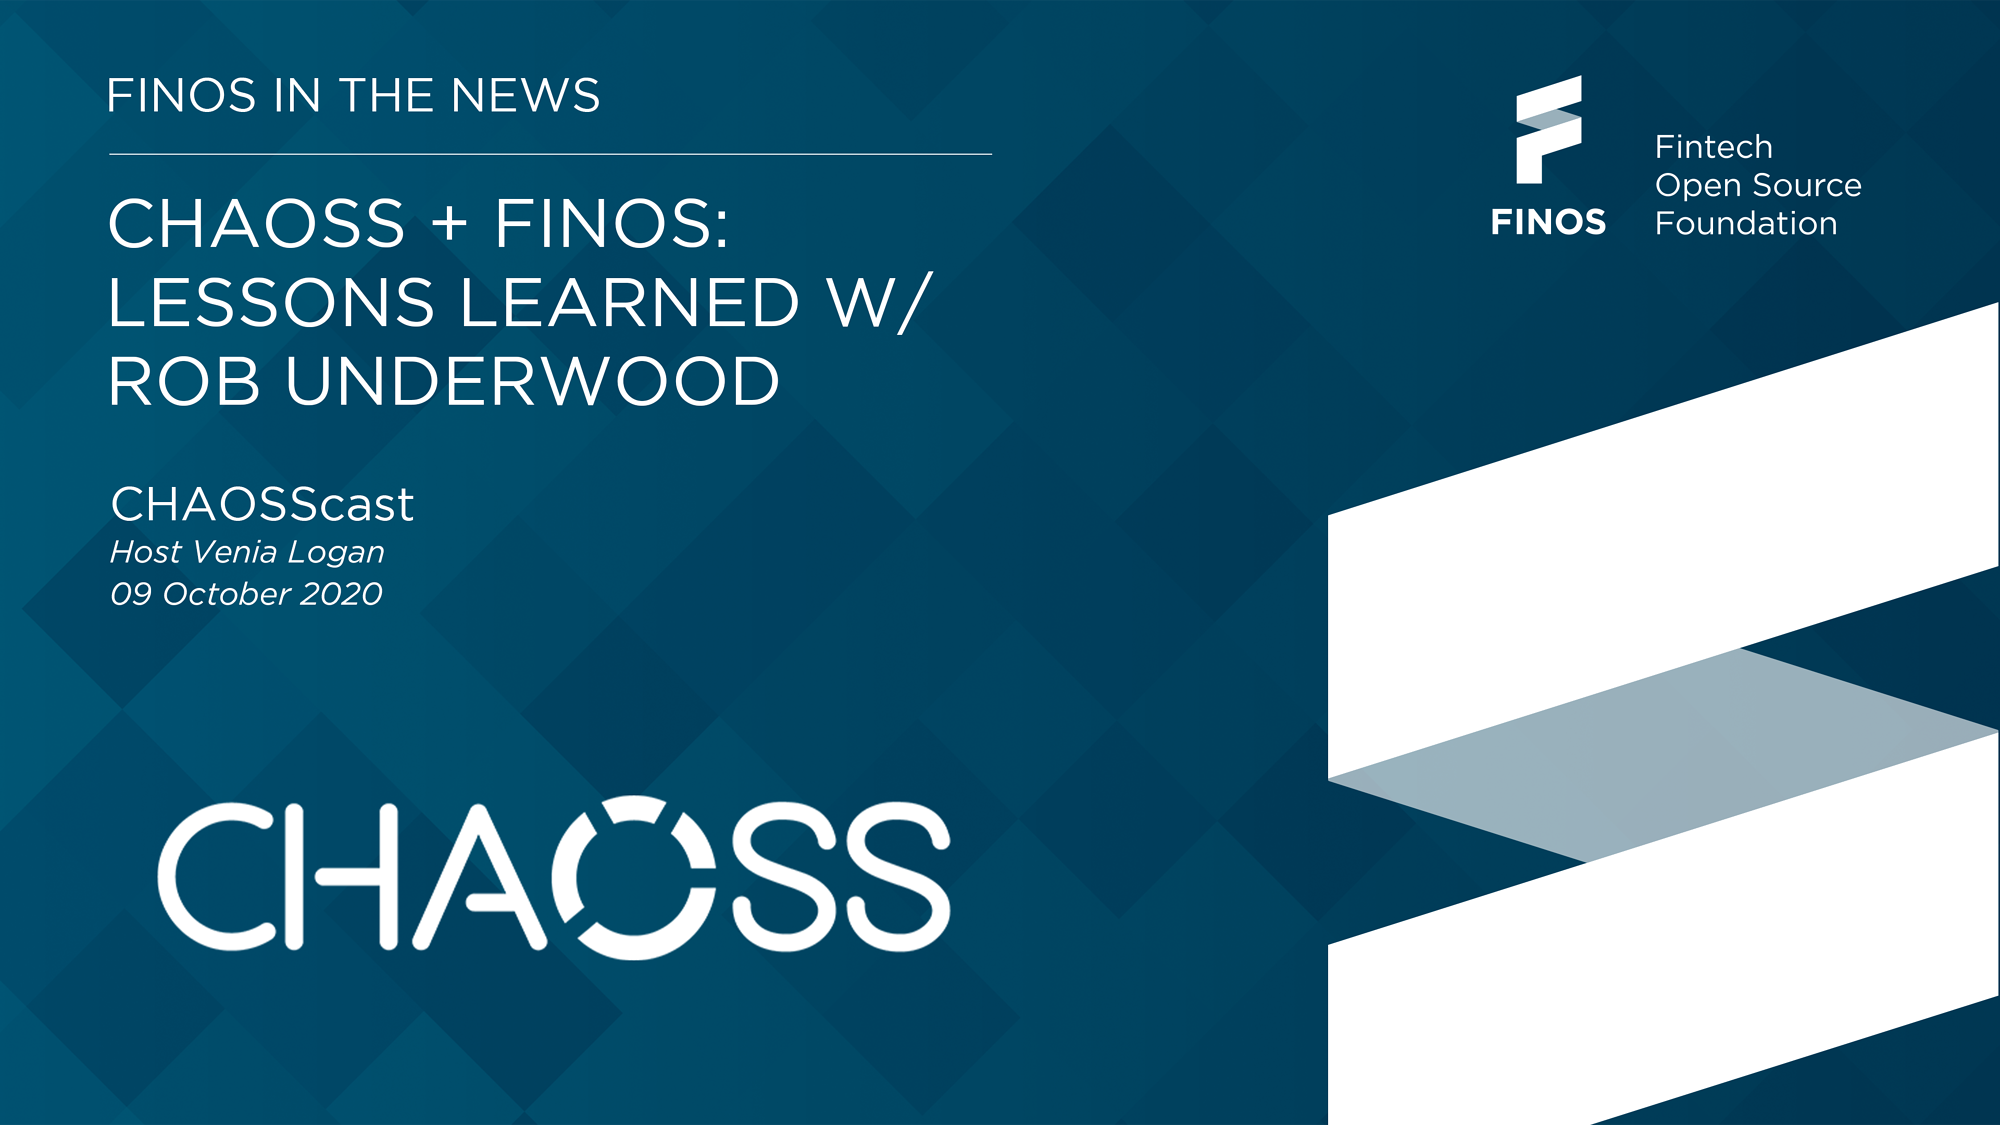 FINOS-in-the-news-chaoss-podcast-rob-underwood